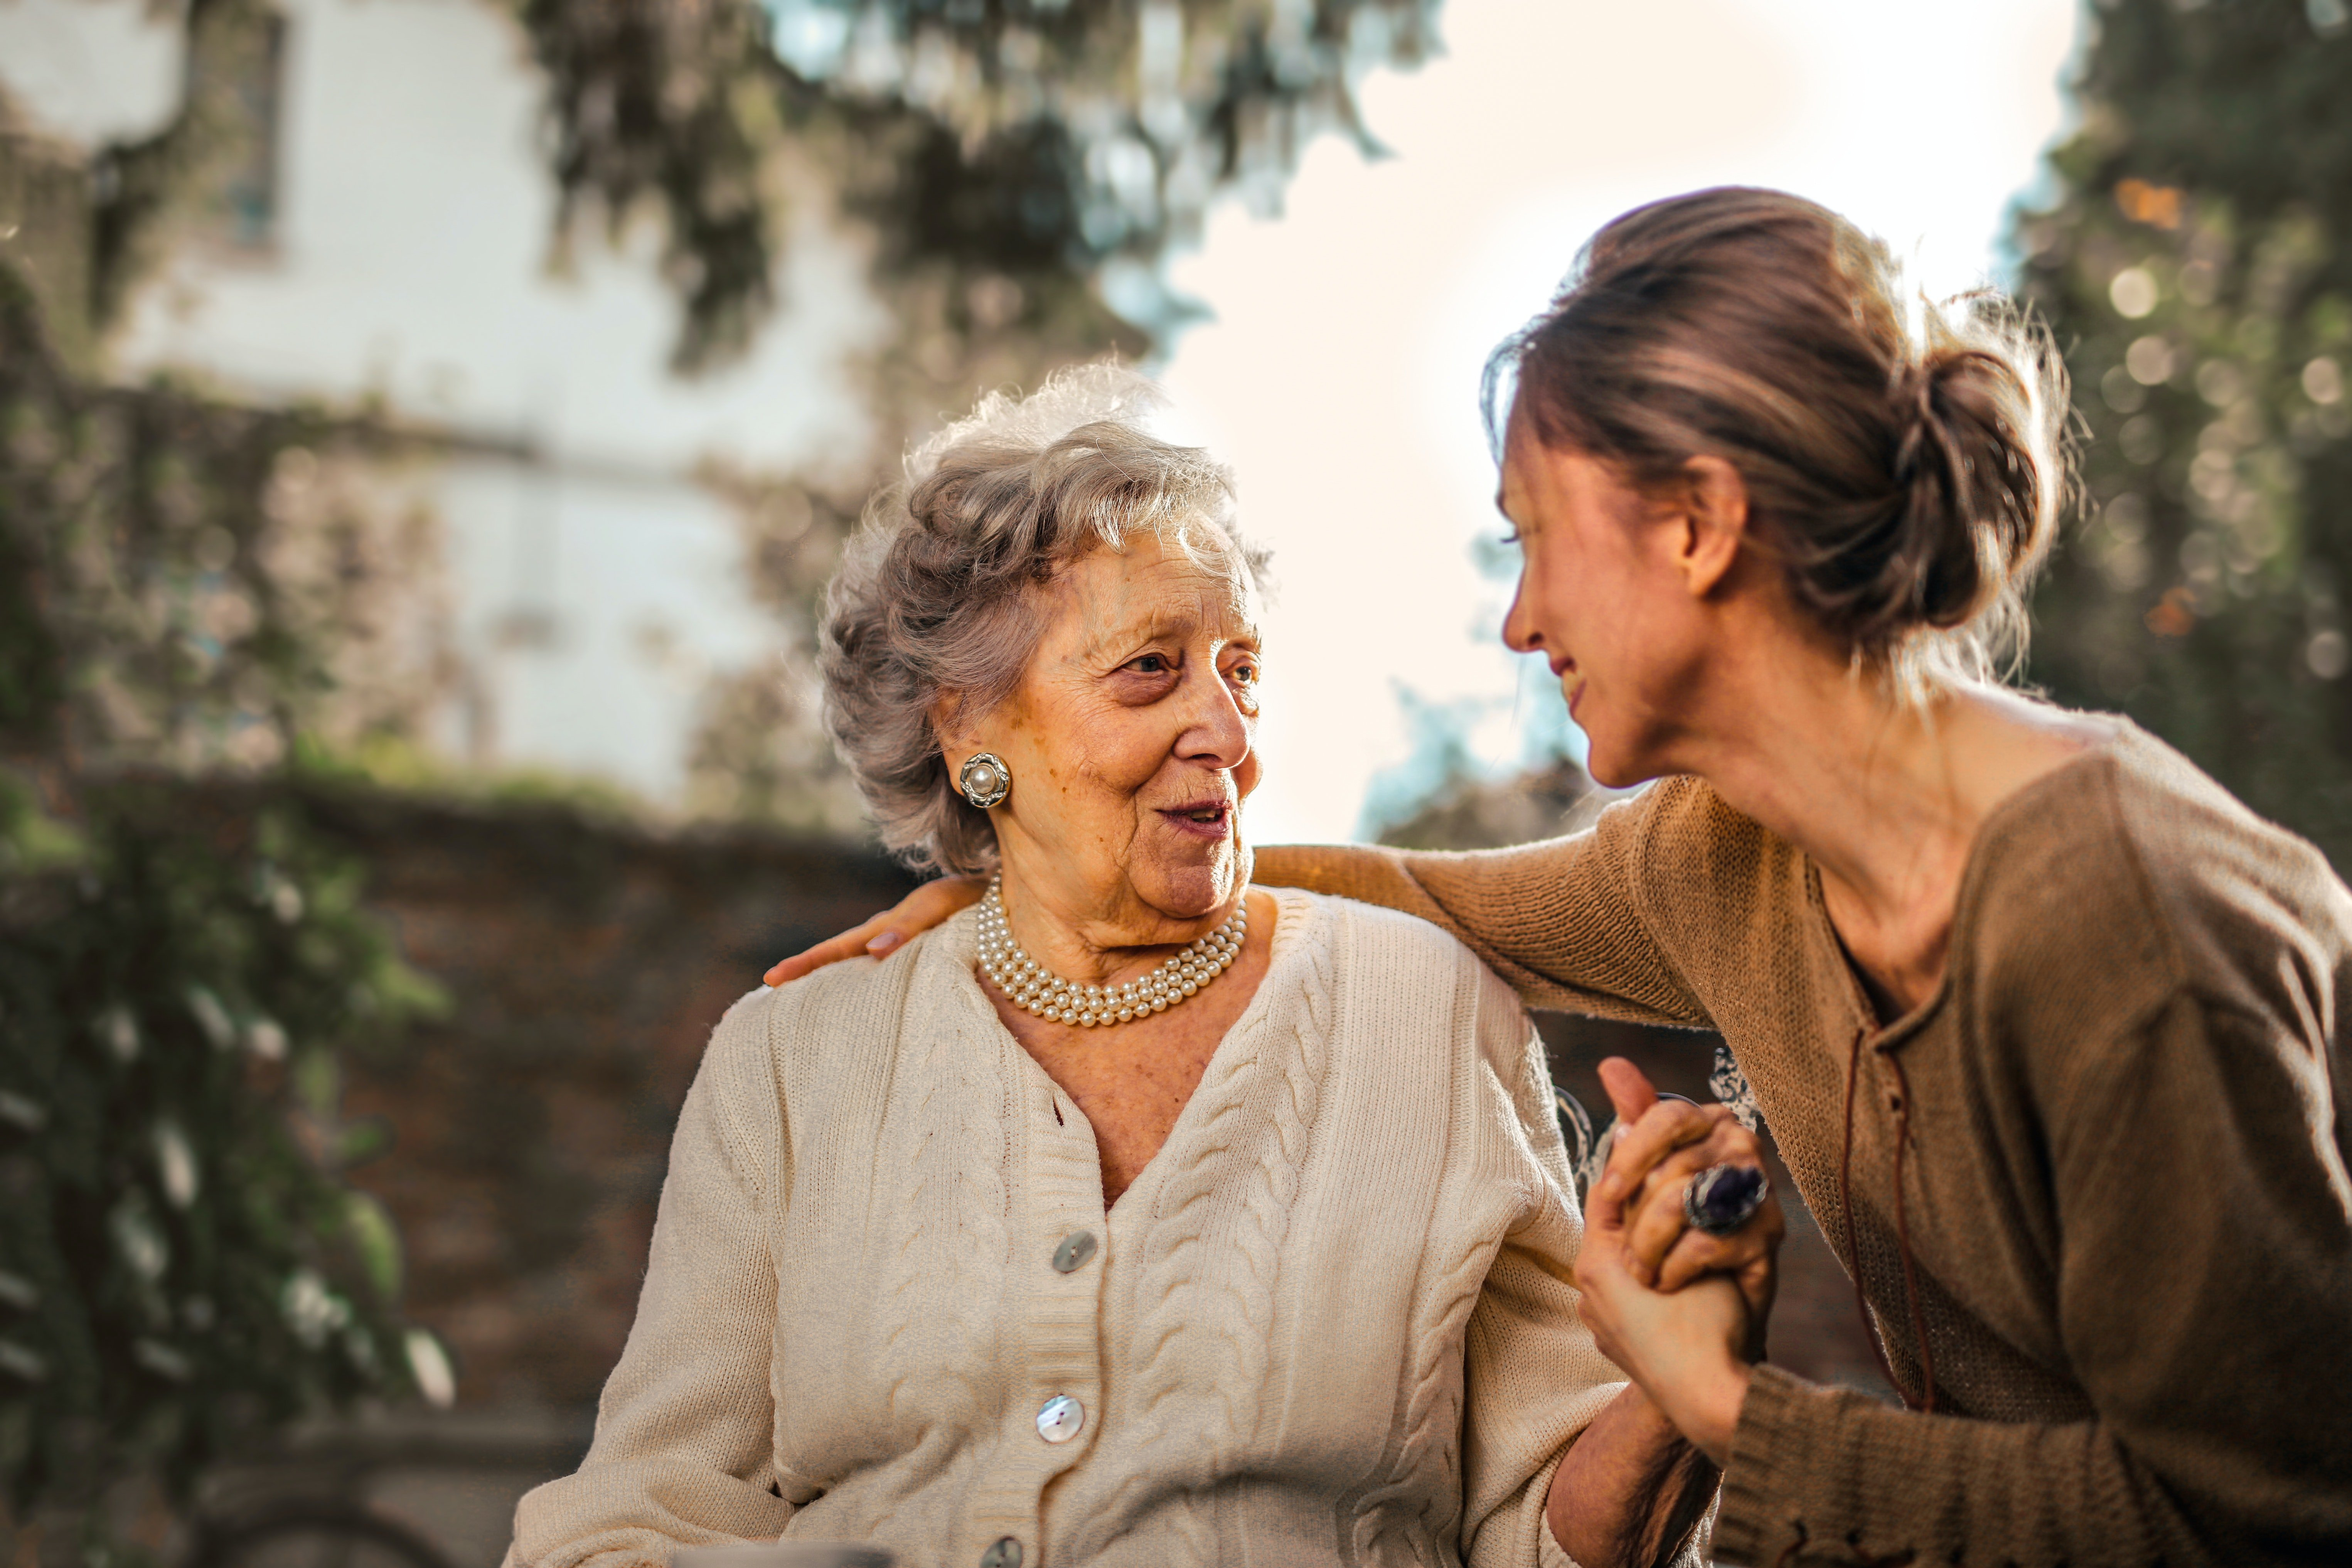 Woman smiling with her mother | Photo: Pexels